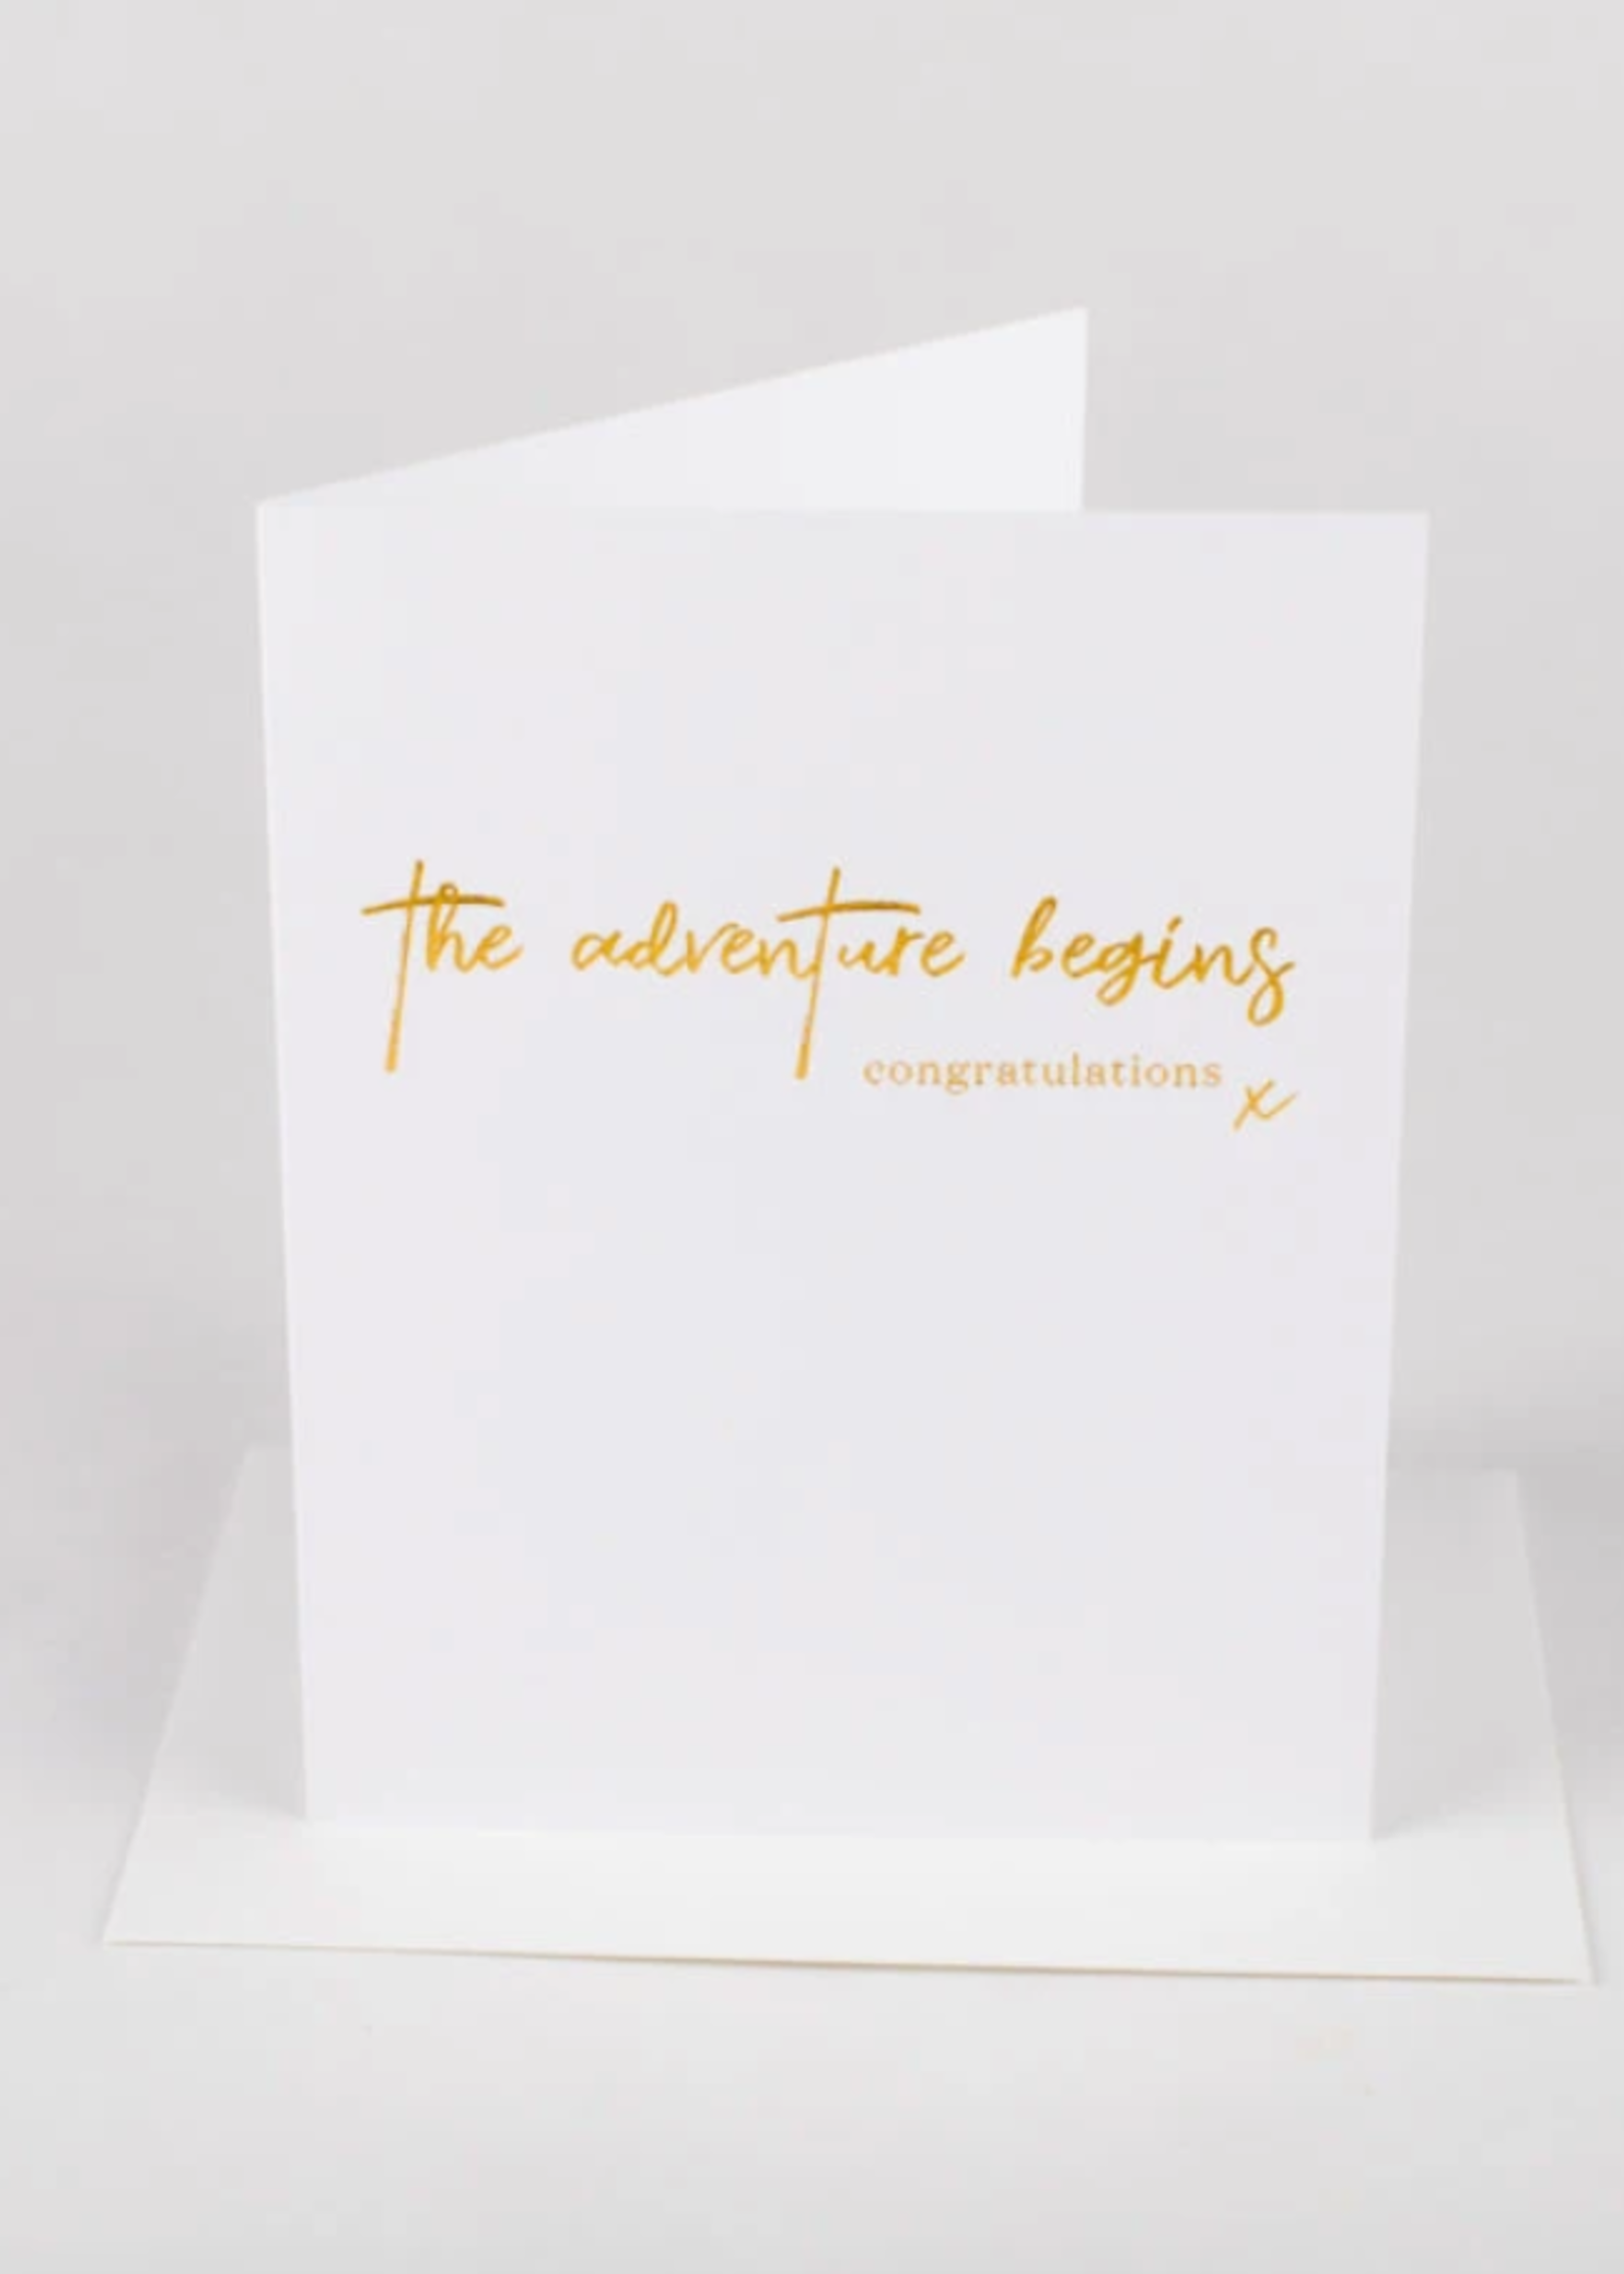 Wrinkle and Crease The adventure begins card